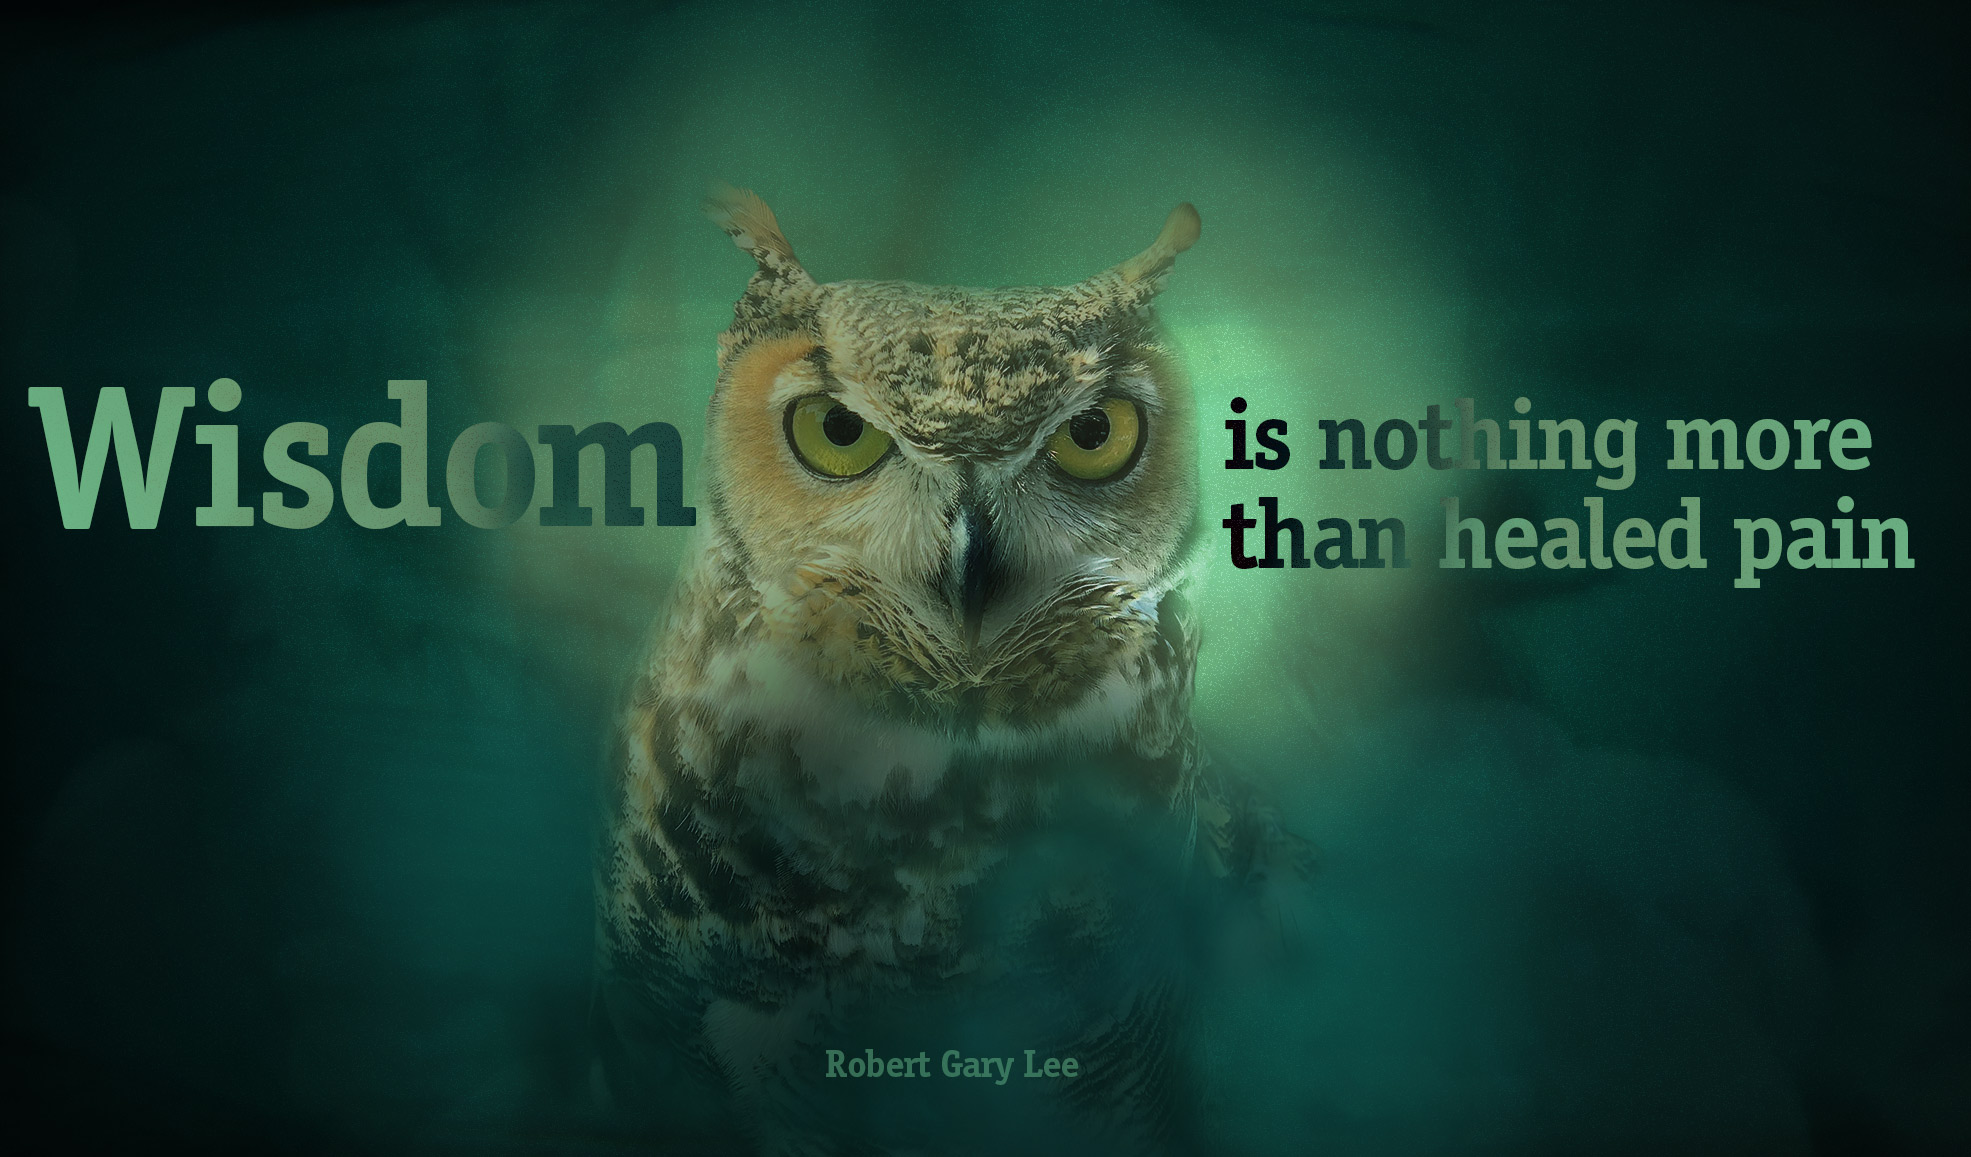 daily inspirational quote image: an owl, in front a blue turquise, blurred background, showing shadows and smoke